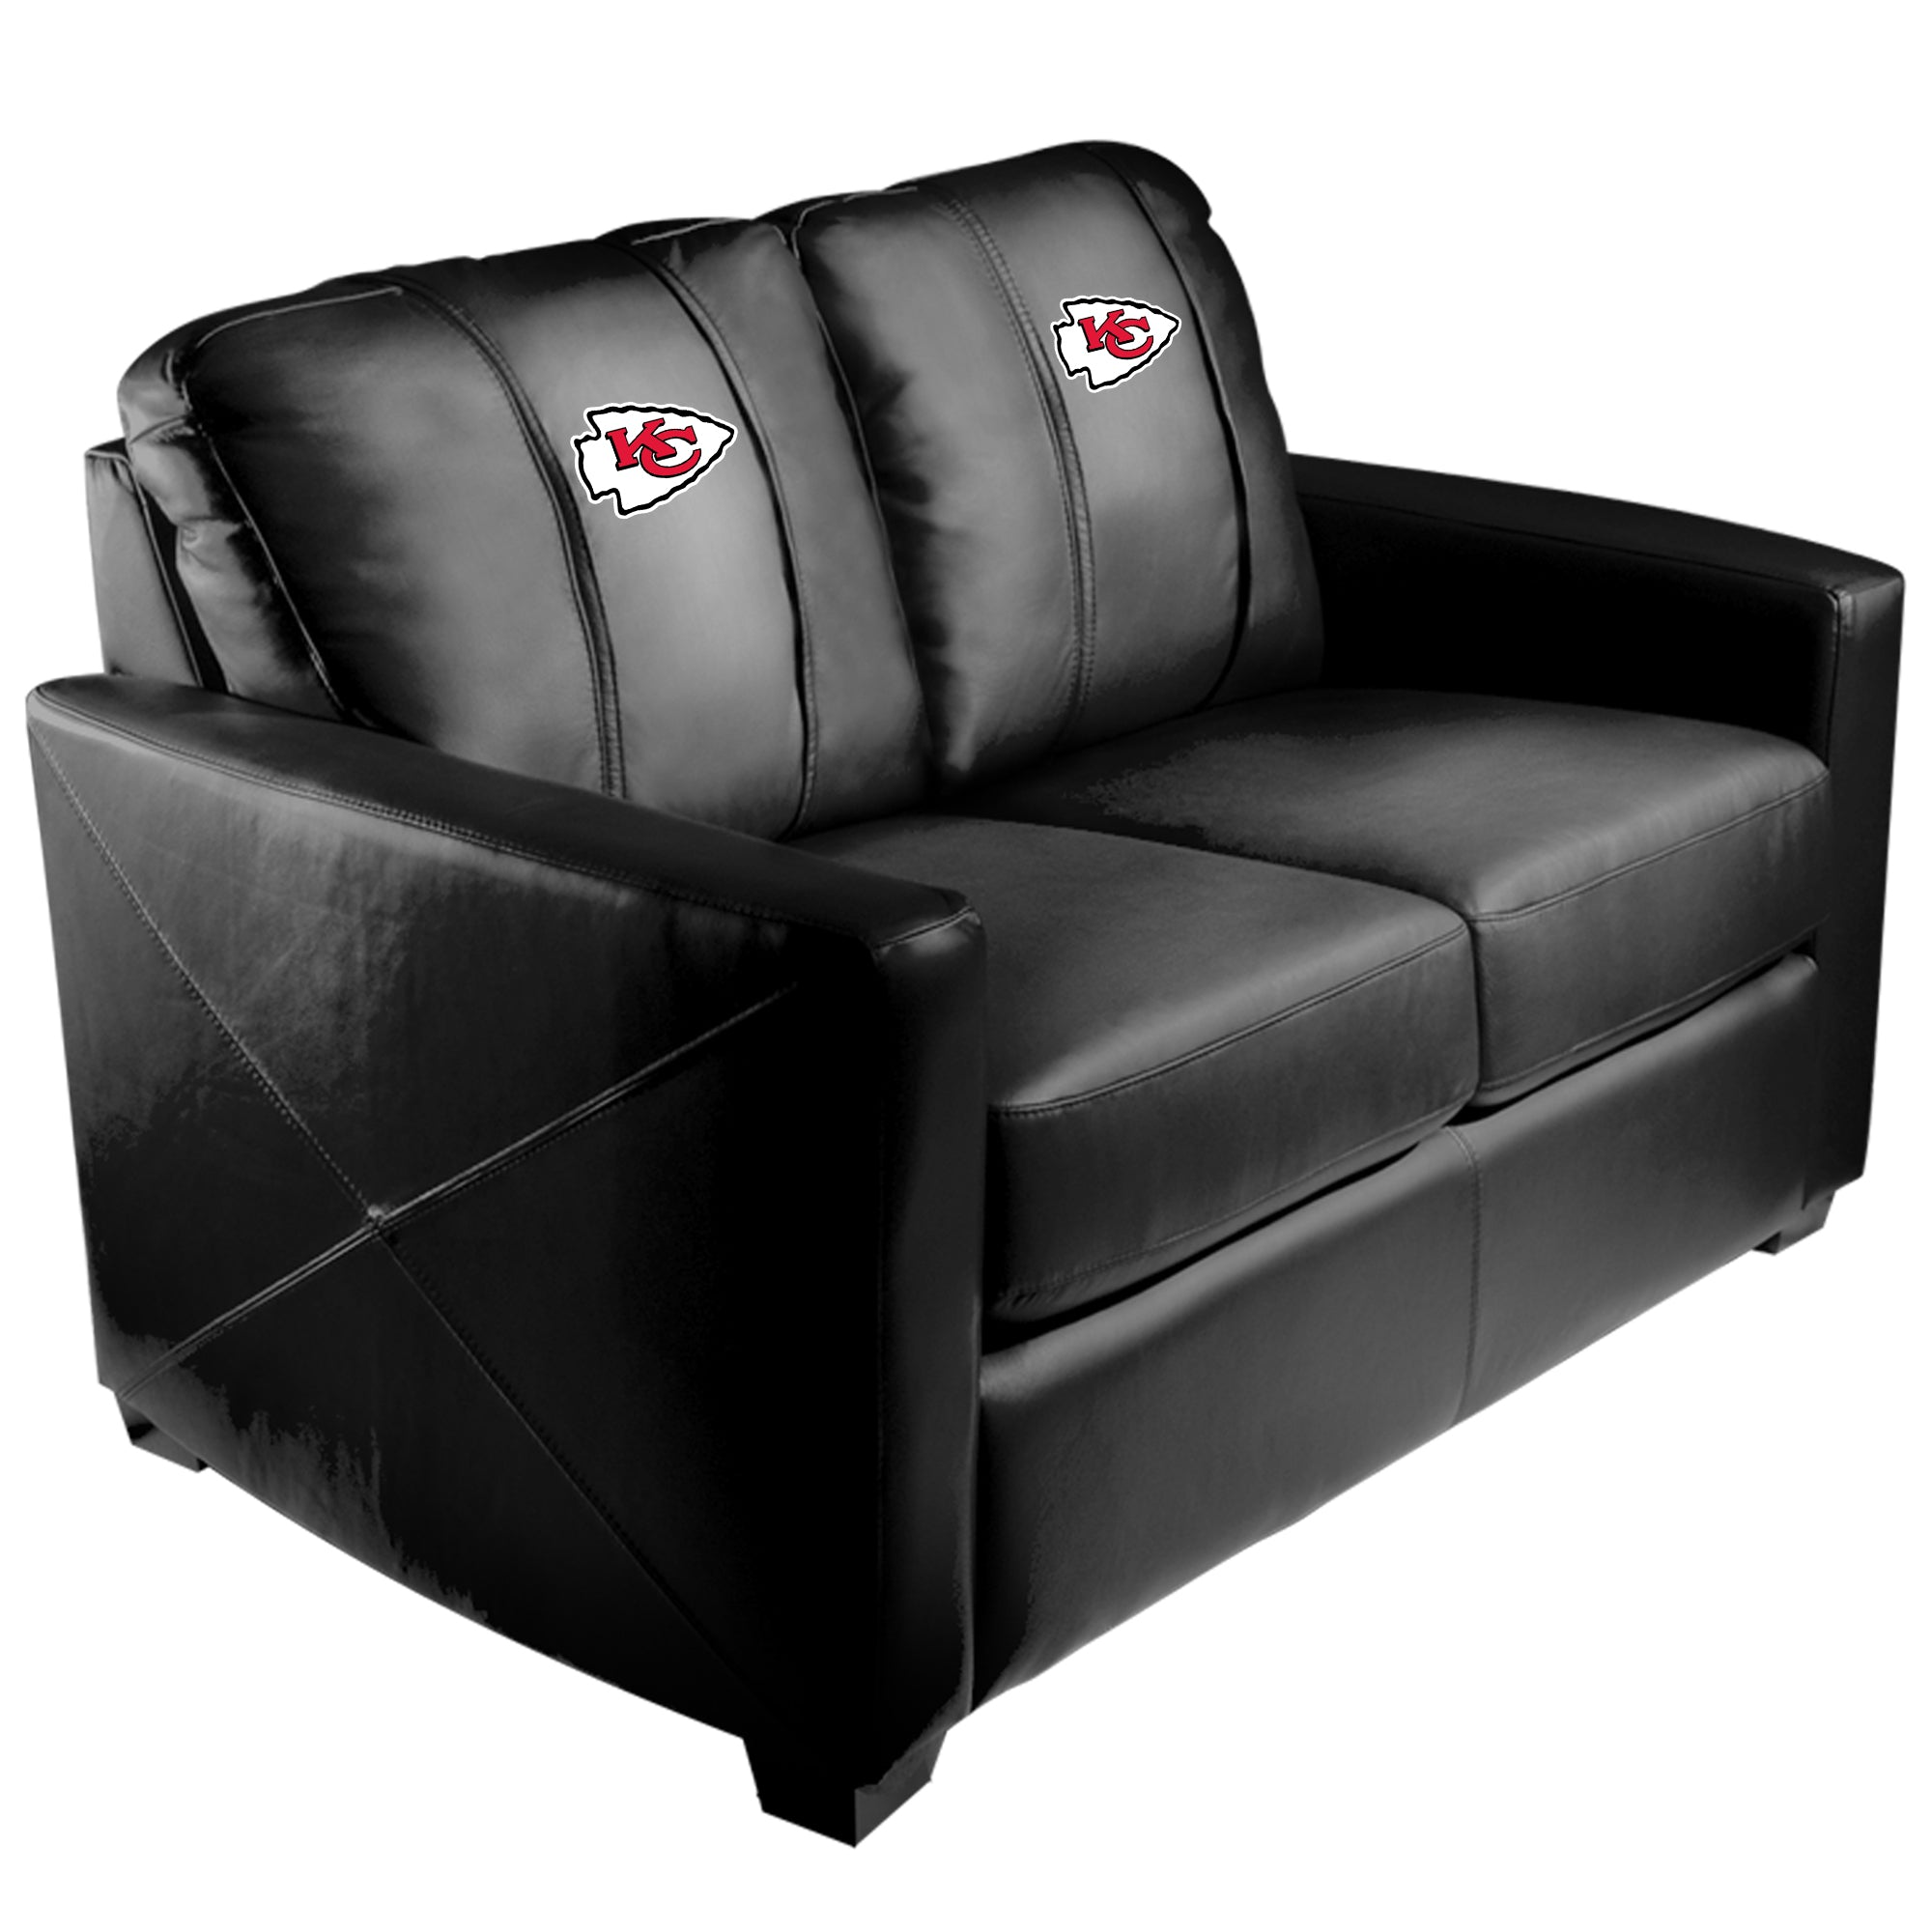 Silver Loveseat with  Kansas City Chiefs Primary Logo